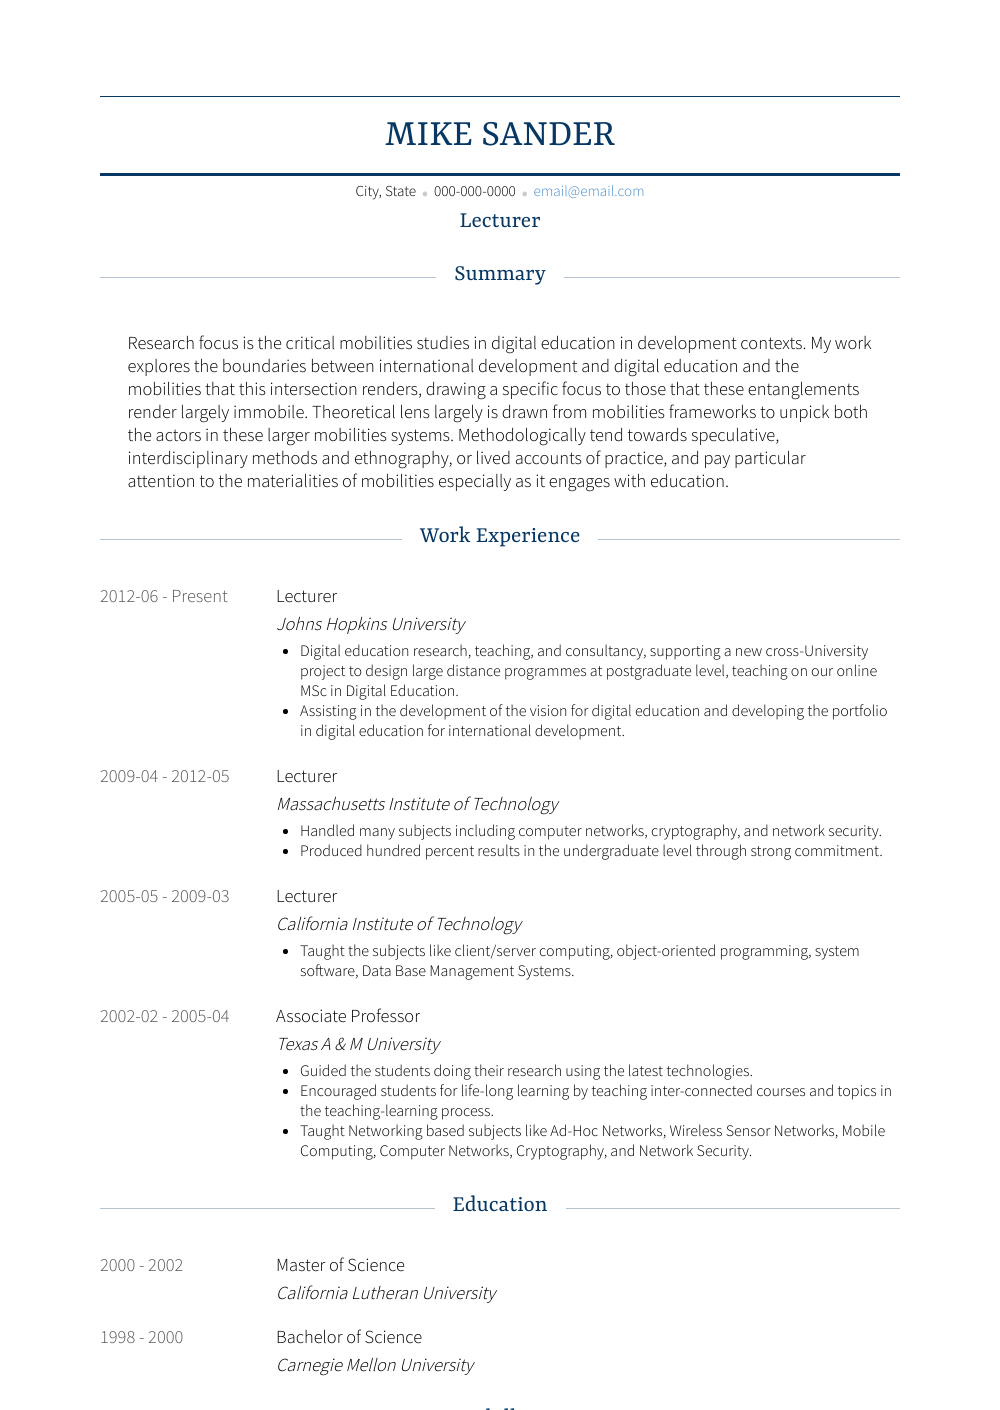 Lecturer Resume Sample and Template